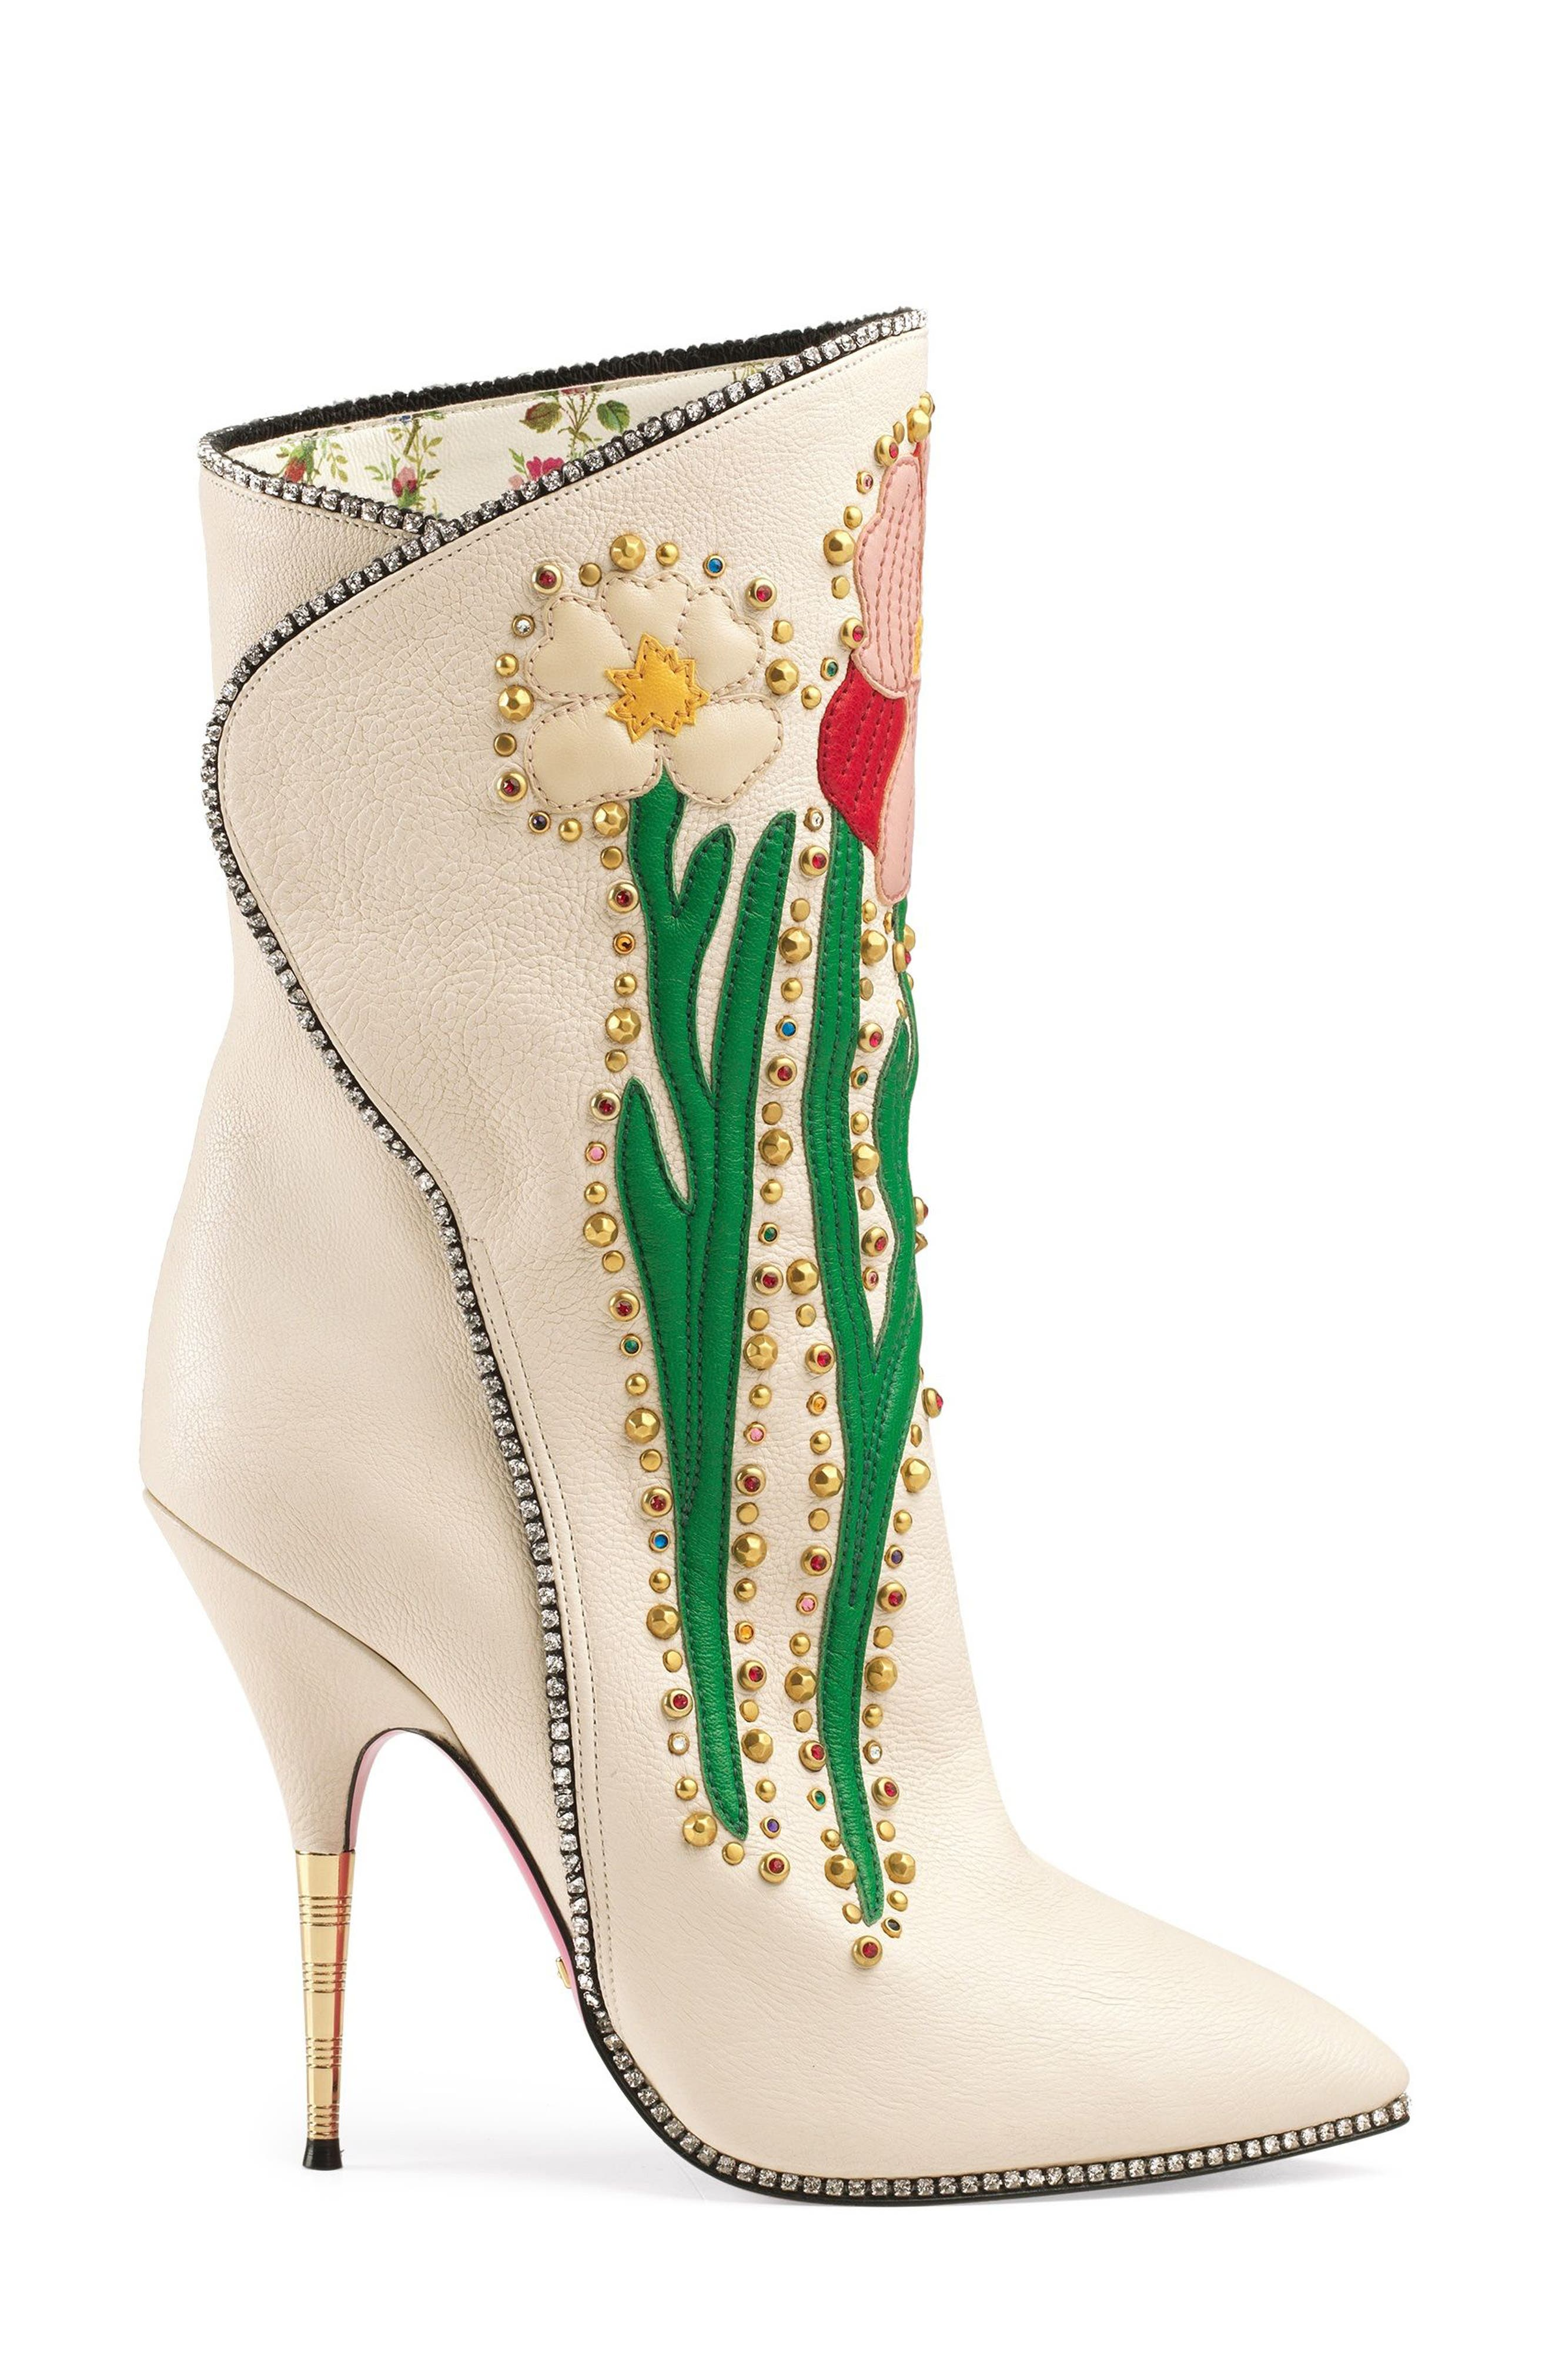 Fosca Floral Embellished Pointy Toe Boot,                             Alternate thumbnail 5, color,                             White Floral